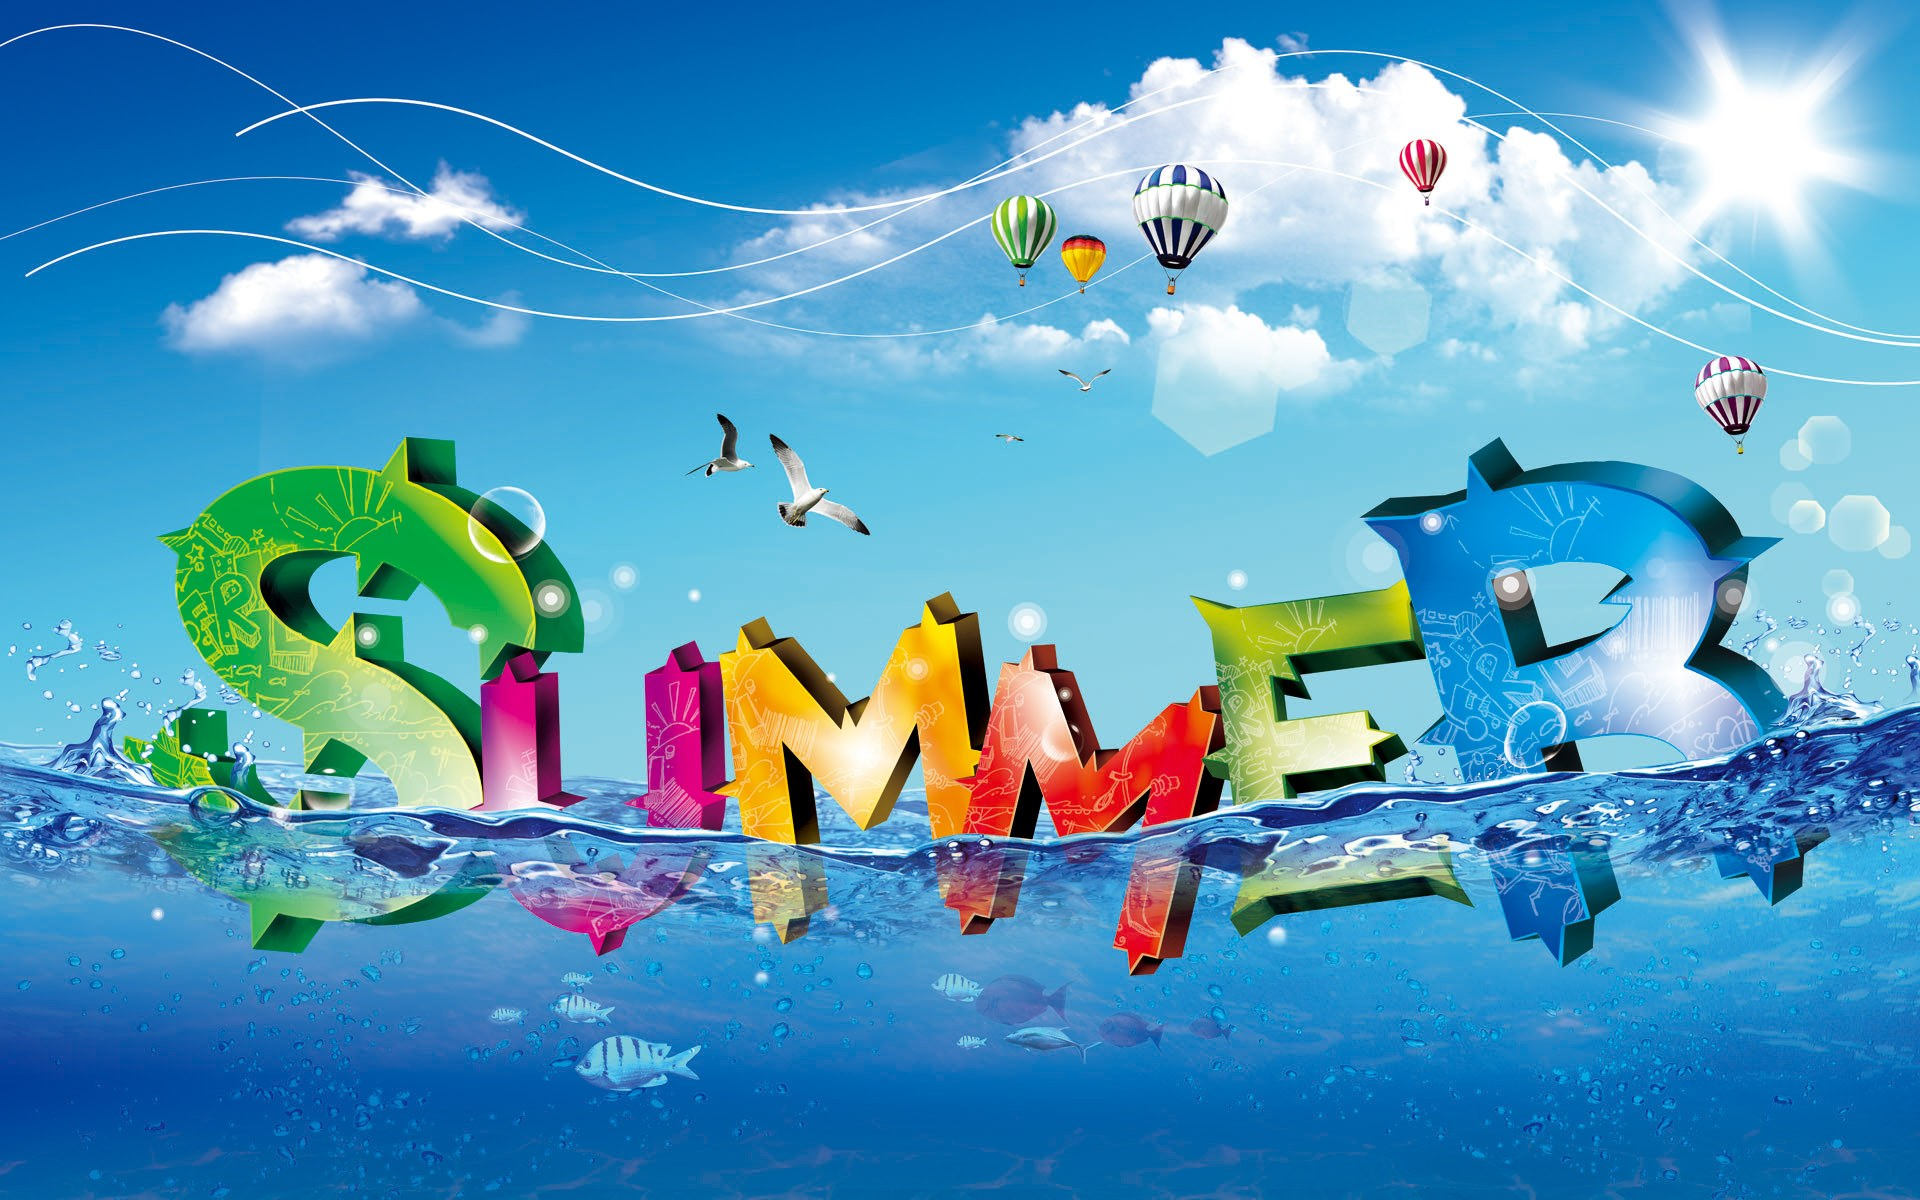 summer vacation wallpaper facebook - photo #6